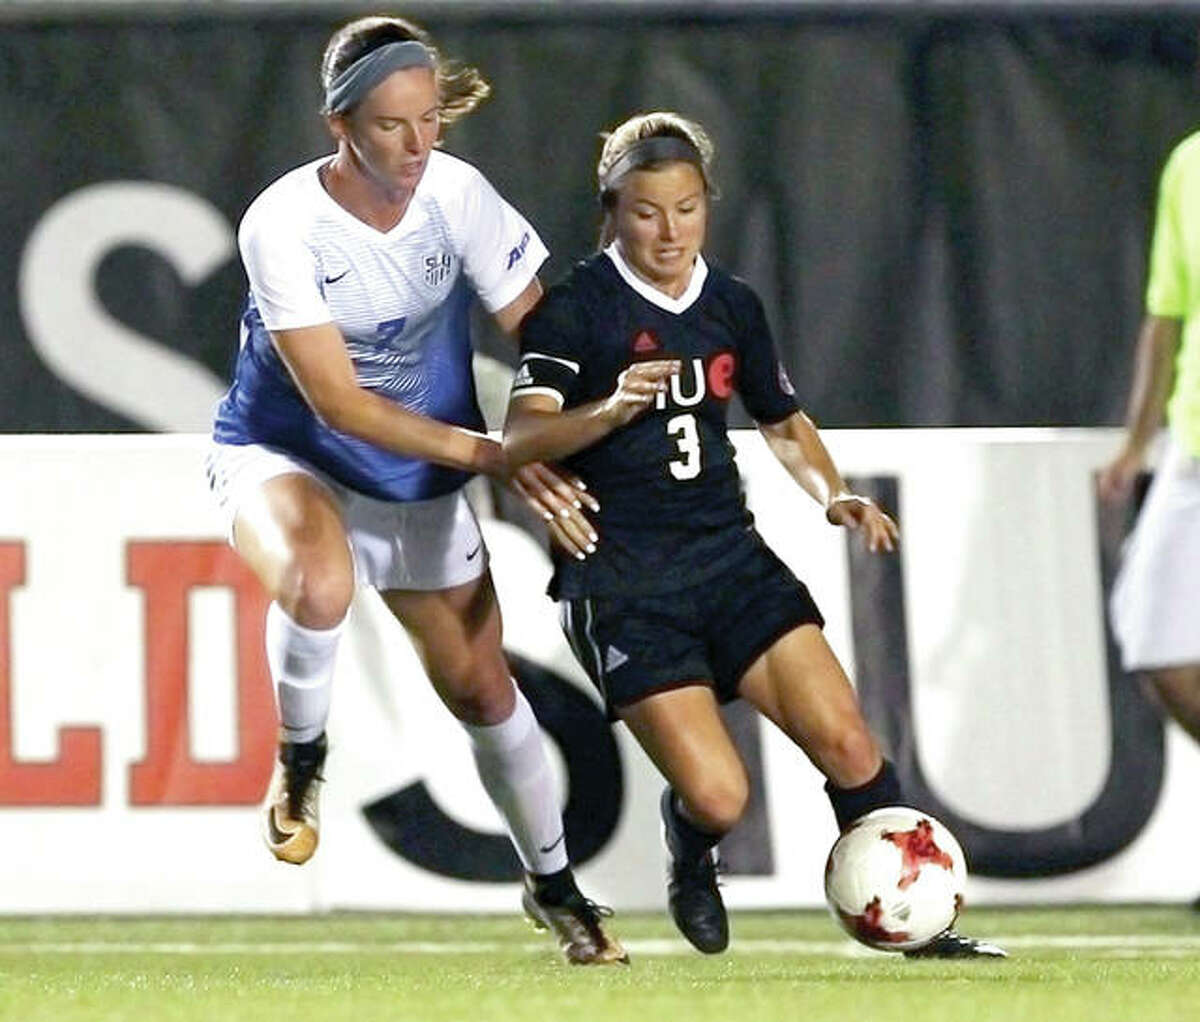 SIUE's Emily Grahl (3) has earned United Soccer Coaches scholar recognition for the second consecutive year. She is shown in action during the 2017 season against Saint Louis University.